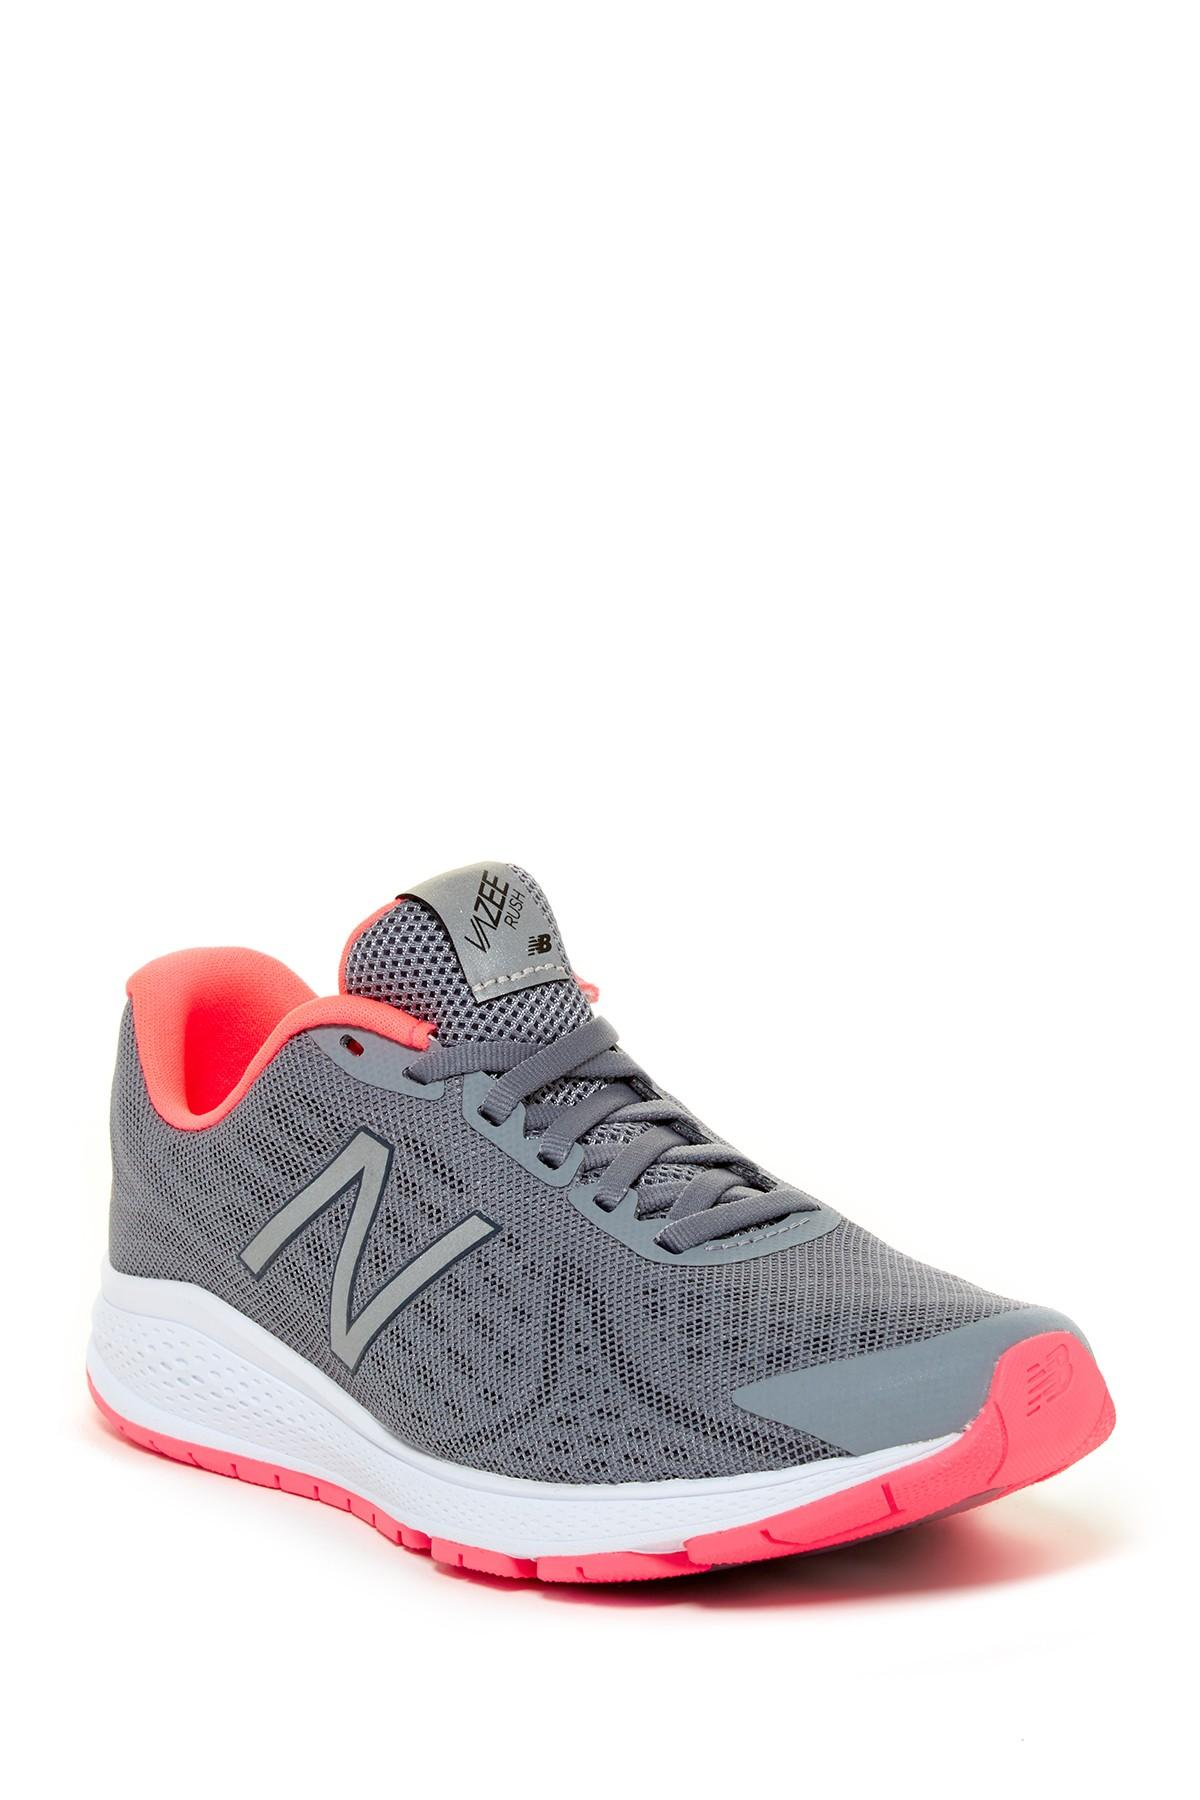 New Balance Women S Vazee Rush Running Shoe Wrushsp